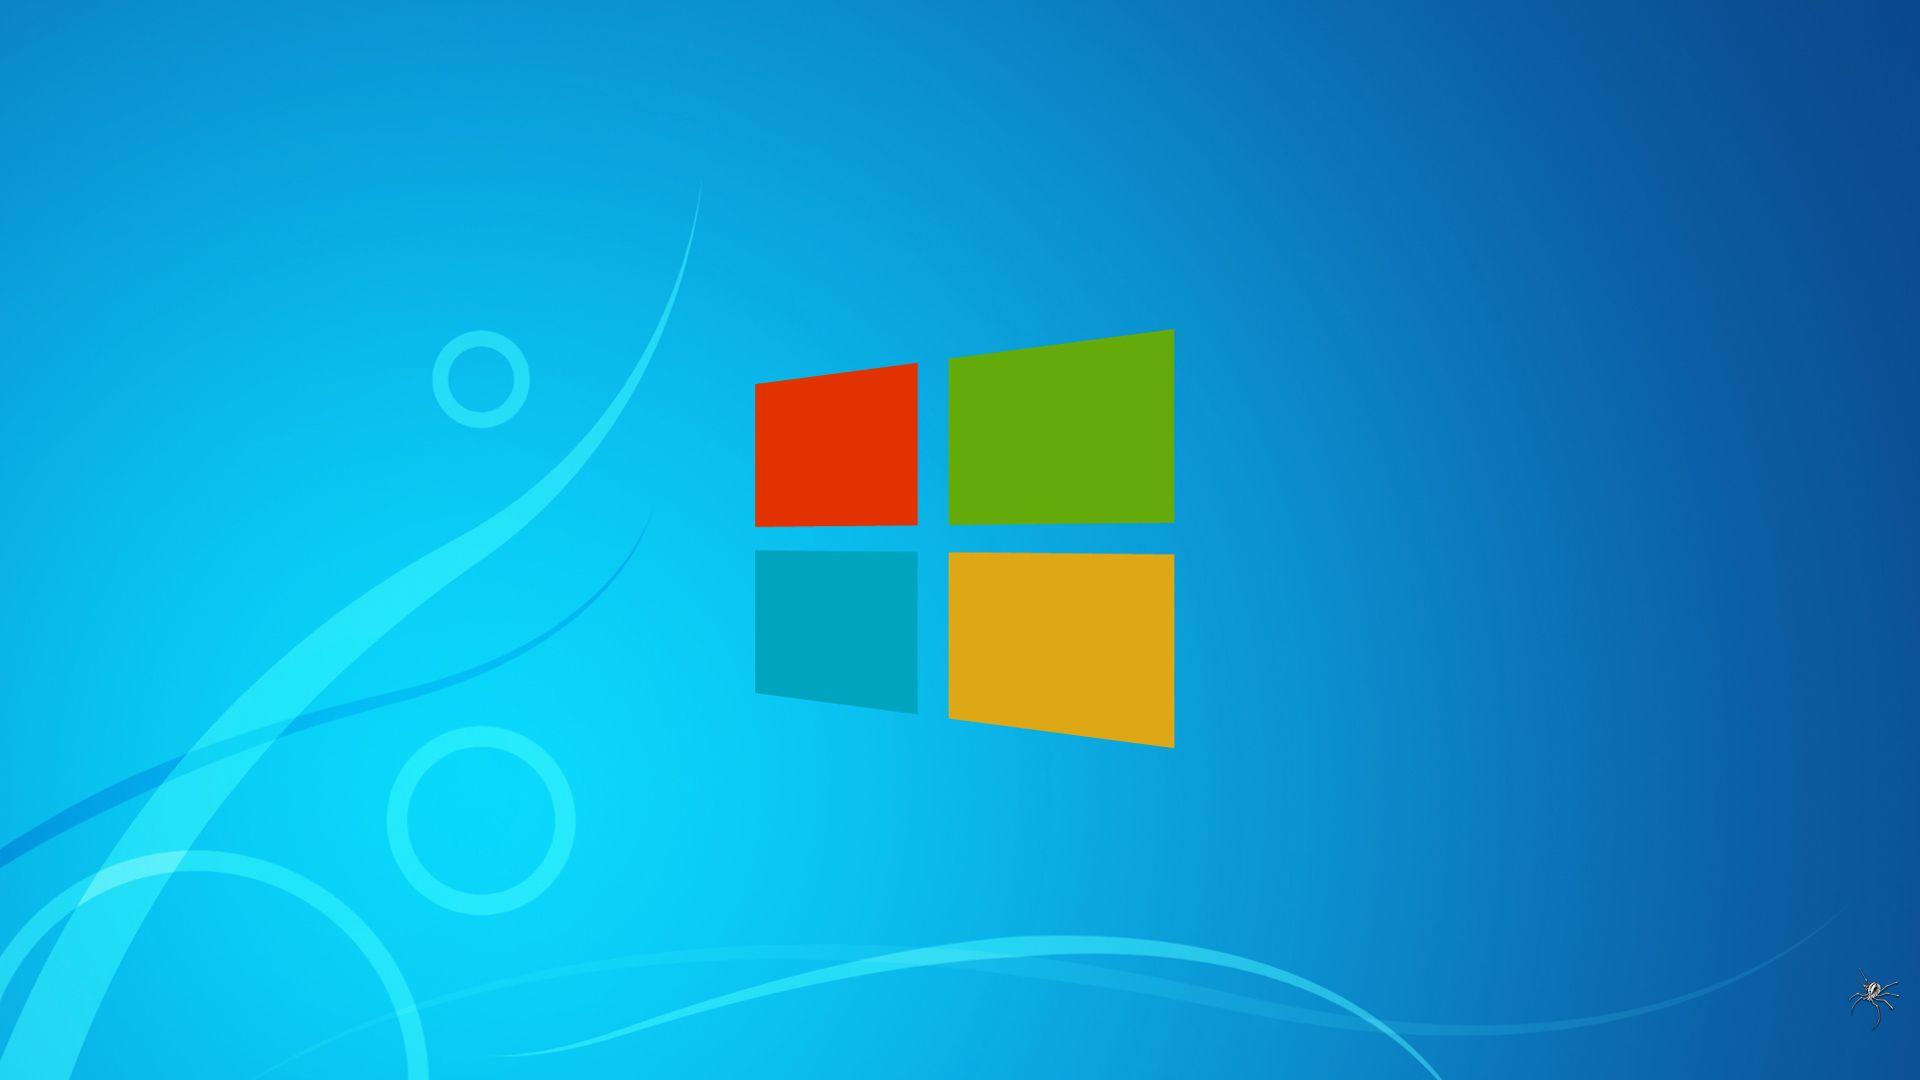 windows wallpaper 1920x1080 ws - photo #7